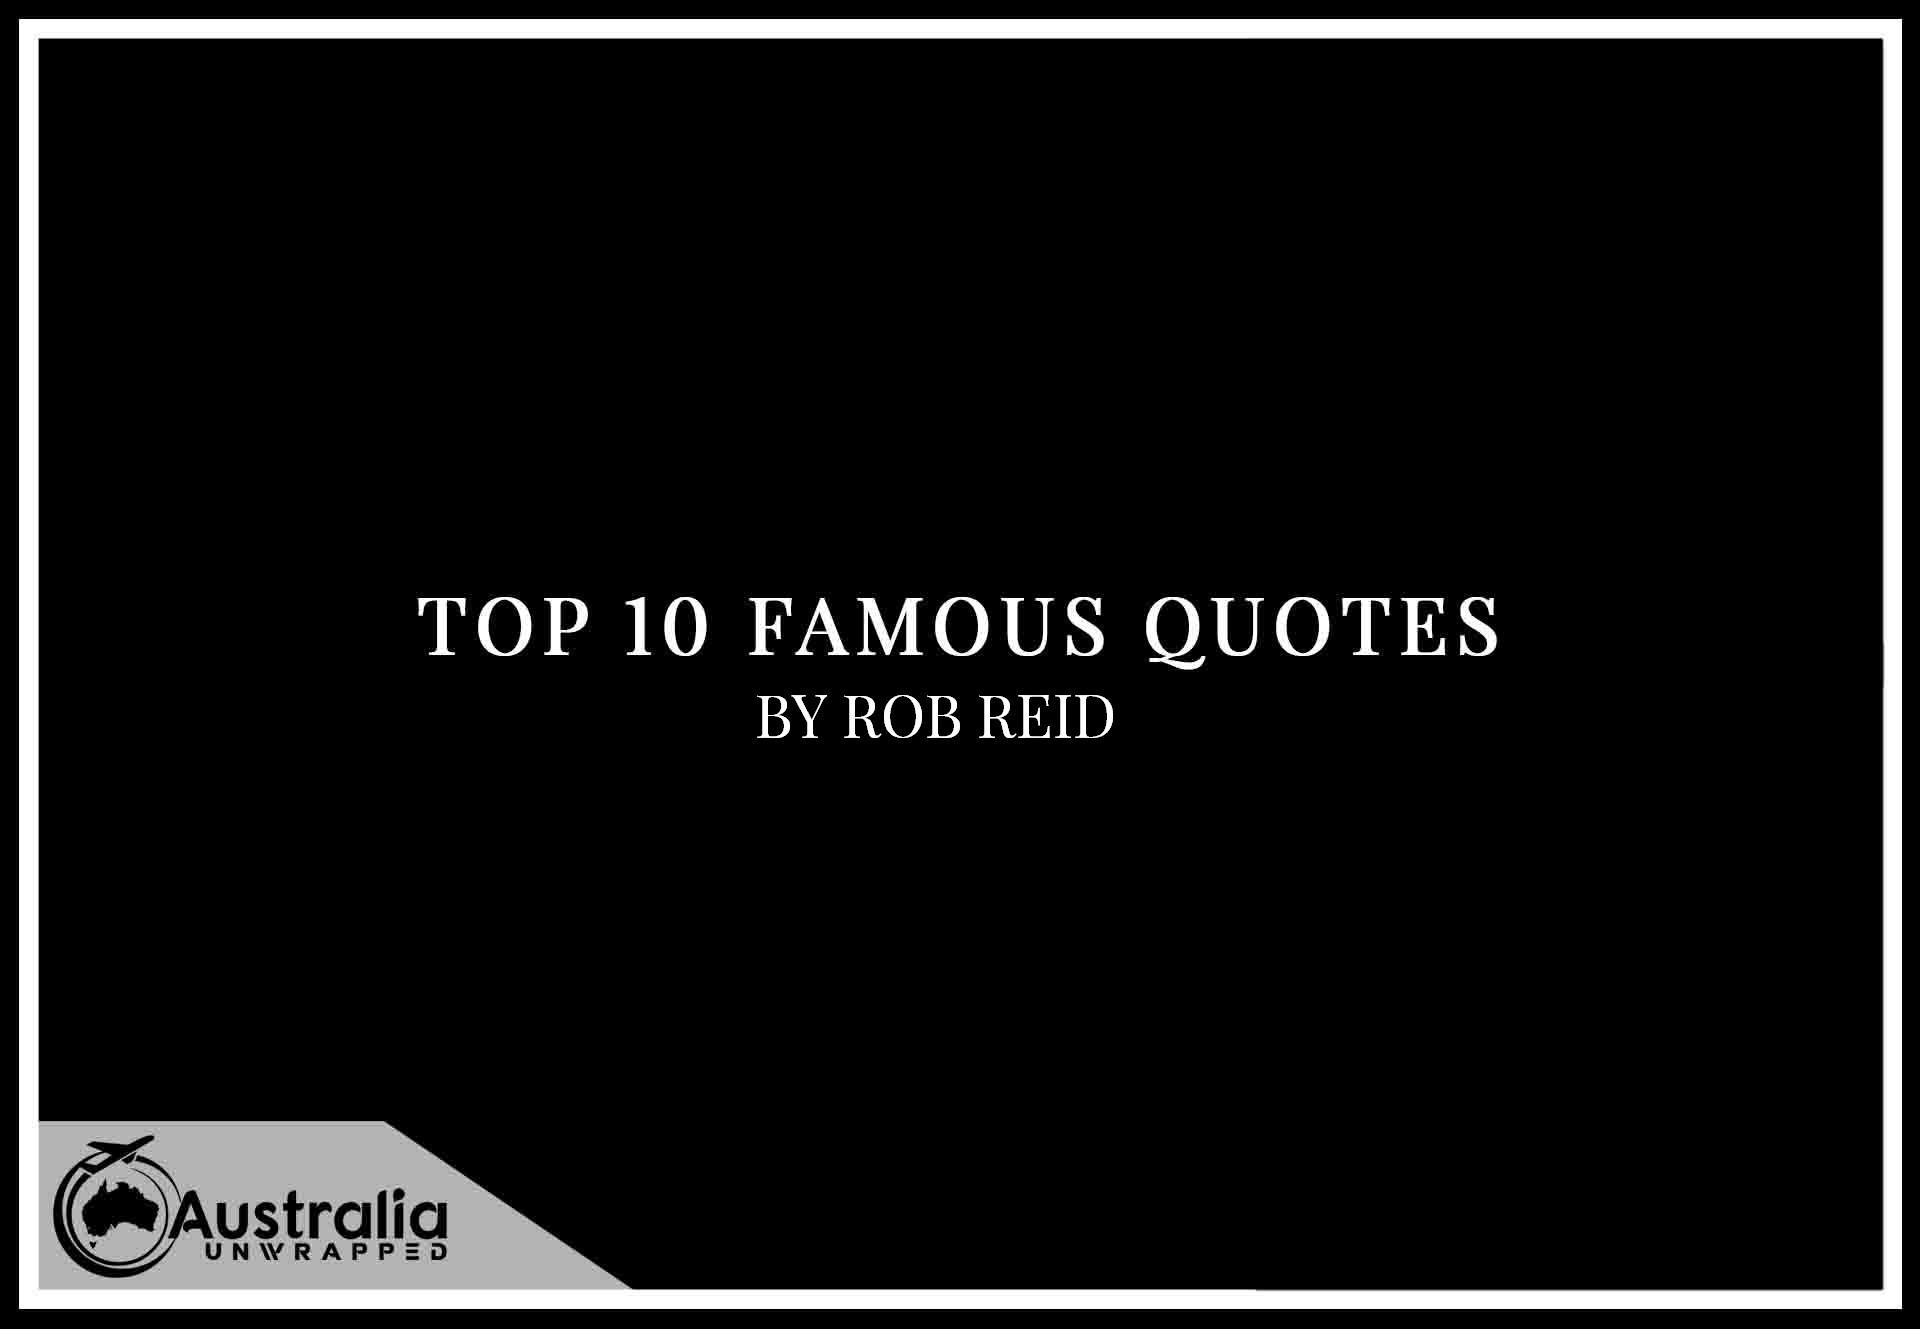 Top 10 Famous Quotes by Author Rob Reid